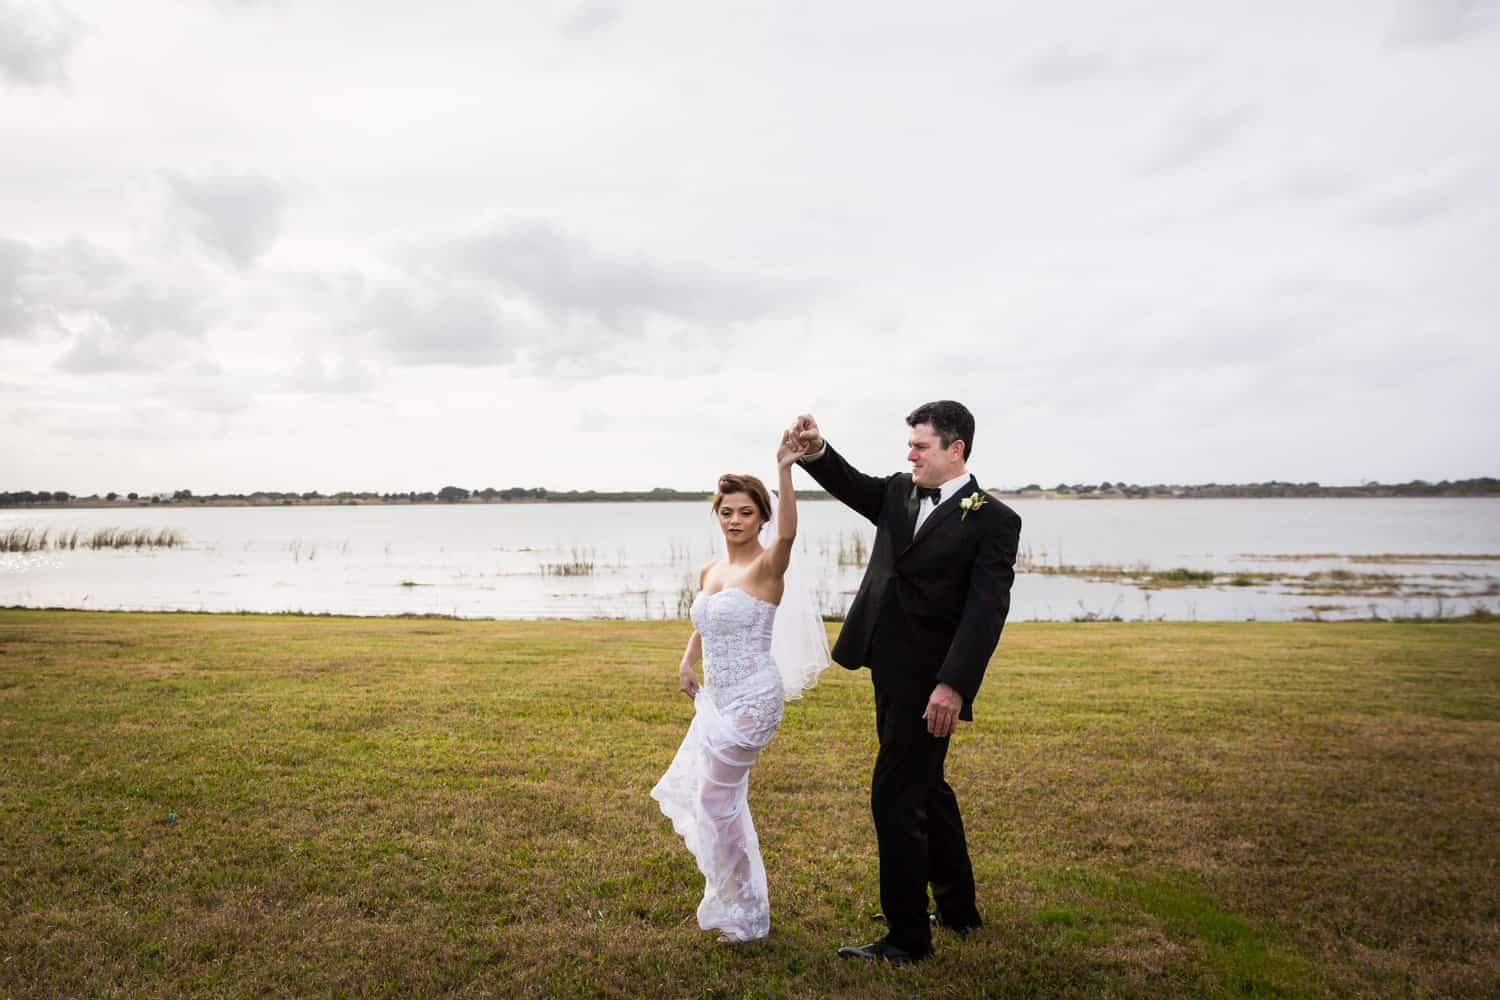 Bride and groom dancing in front of lake for an article on wedding cost cutting tips